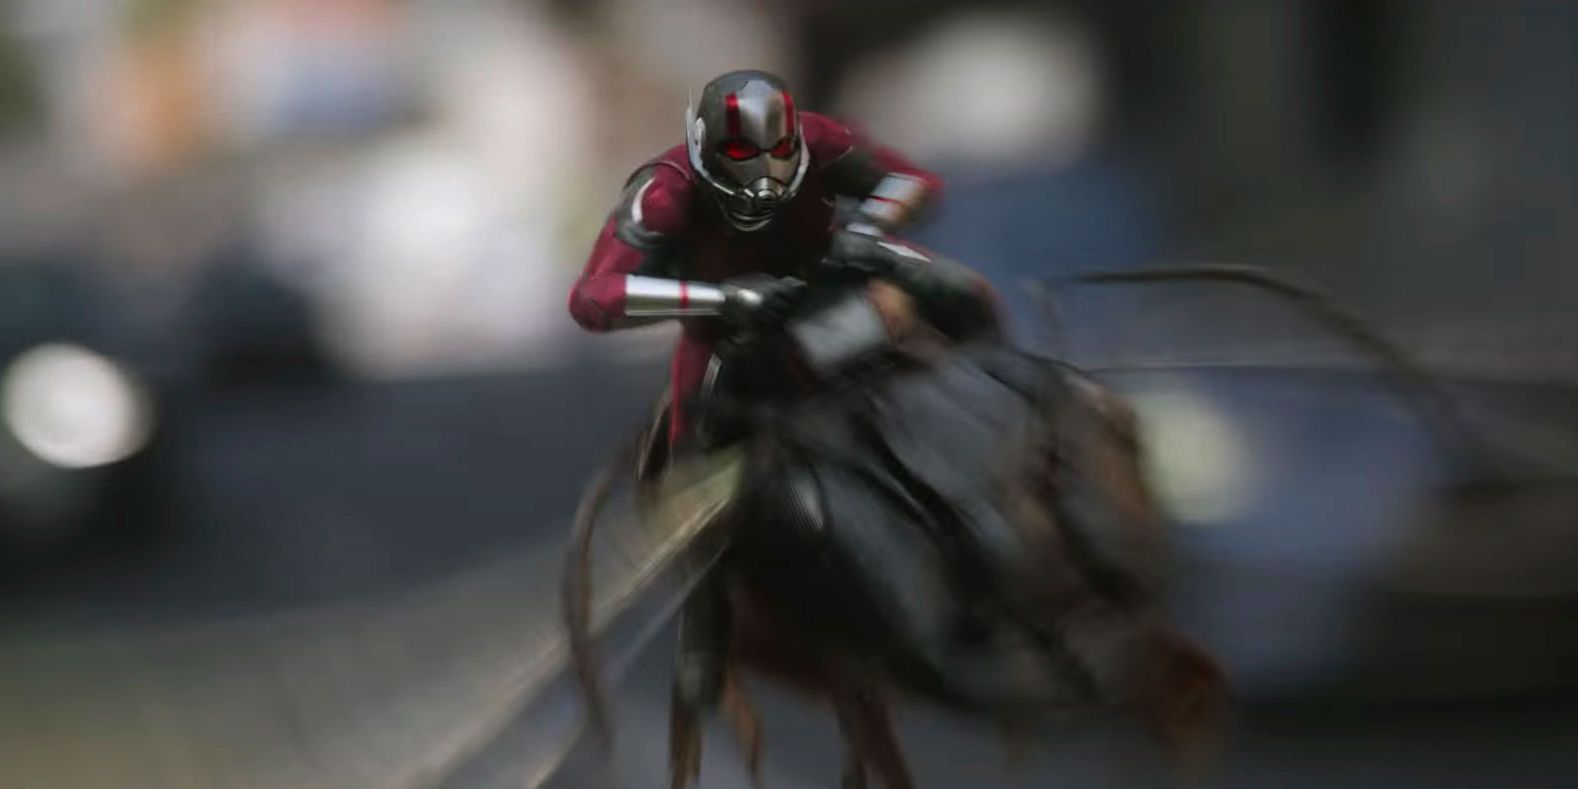 Paul Rudd, Ant-Man and The Wasp trailer